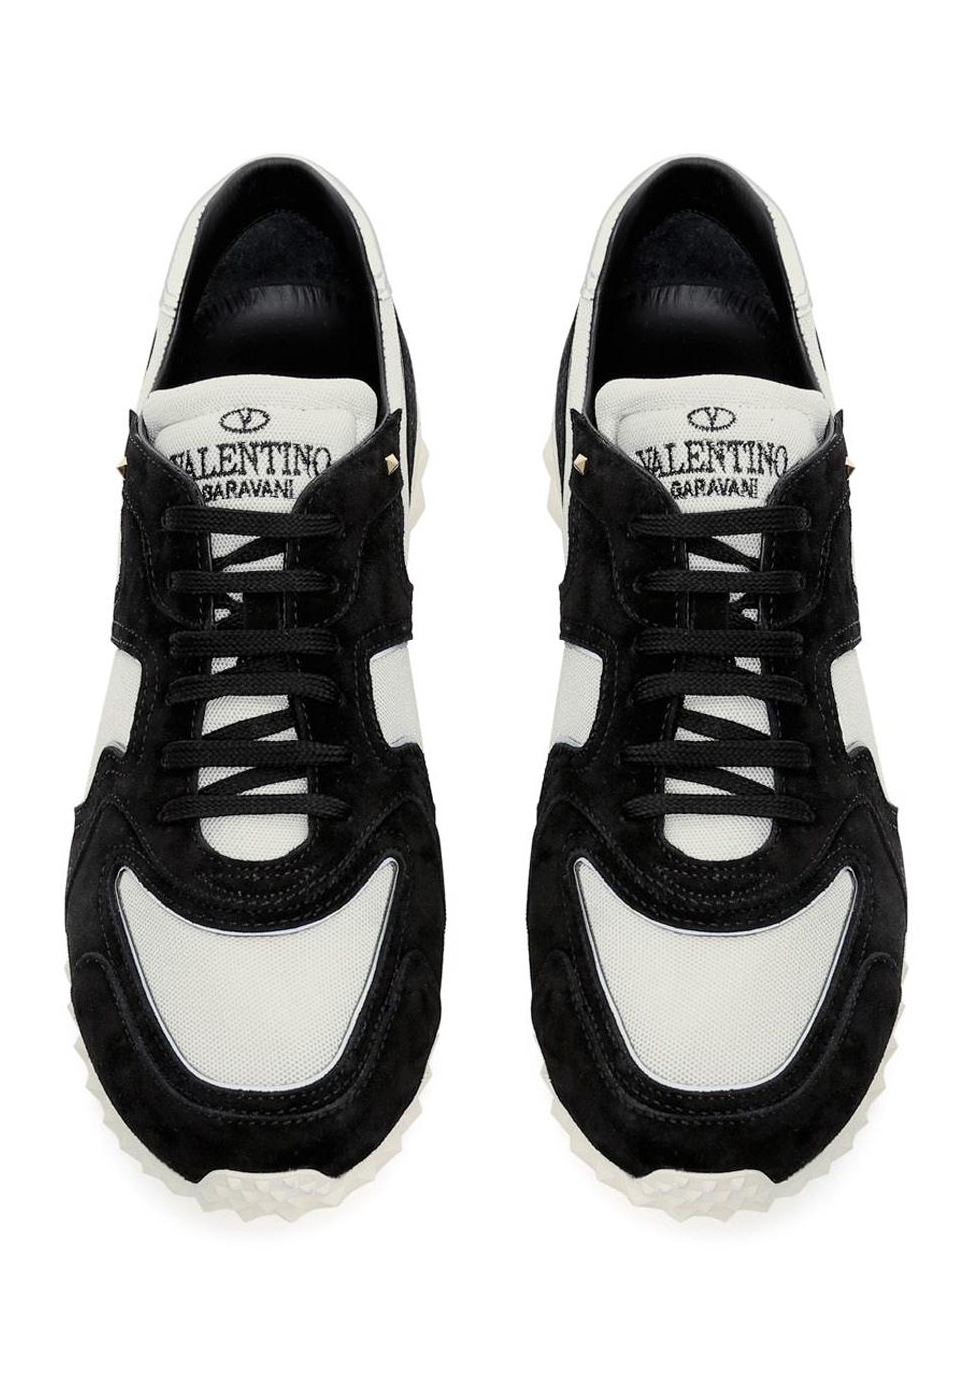 Valentino men's sneakers in black Leather white Fabric ...